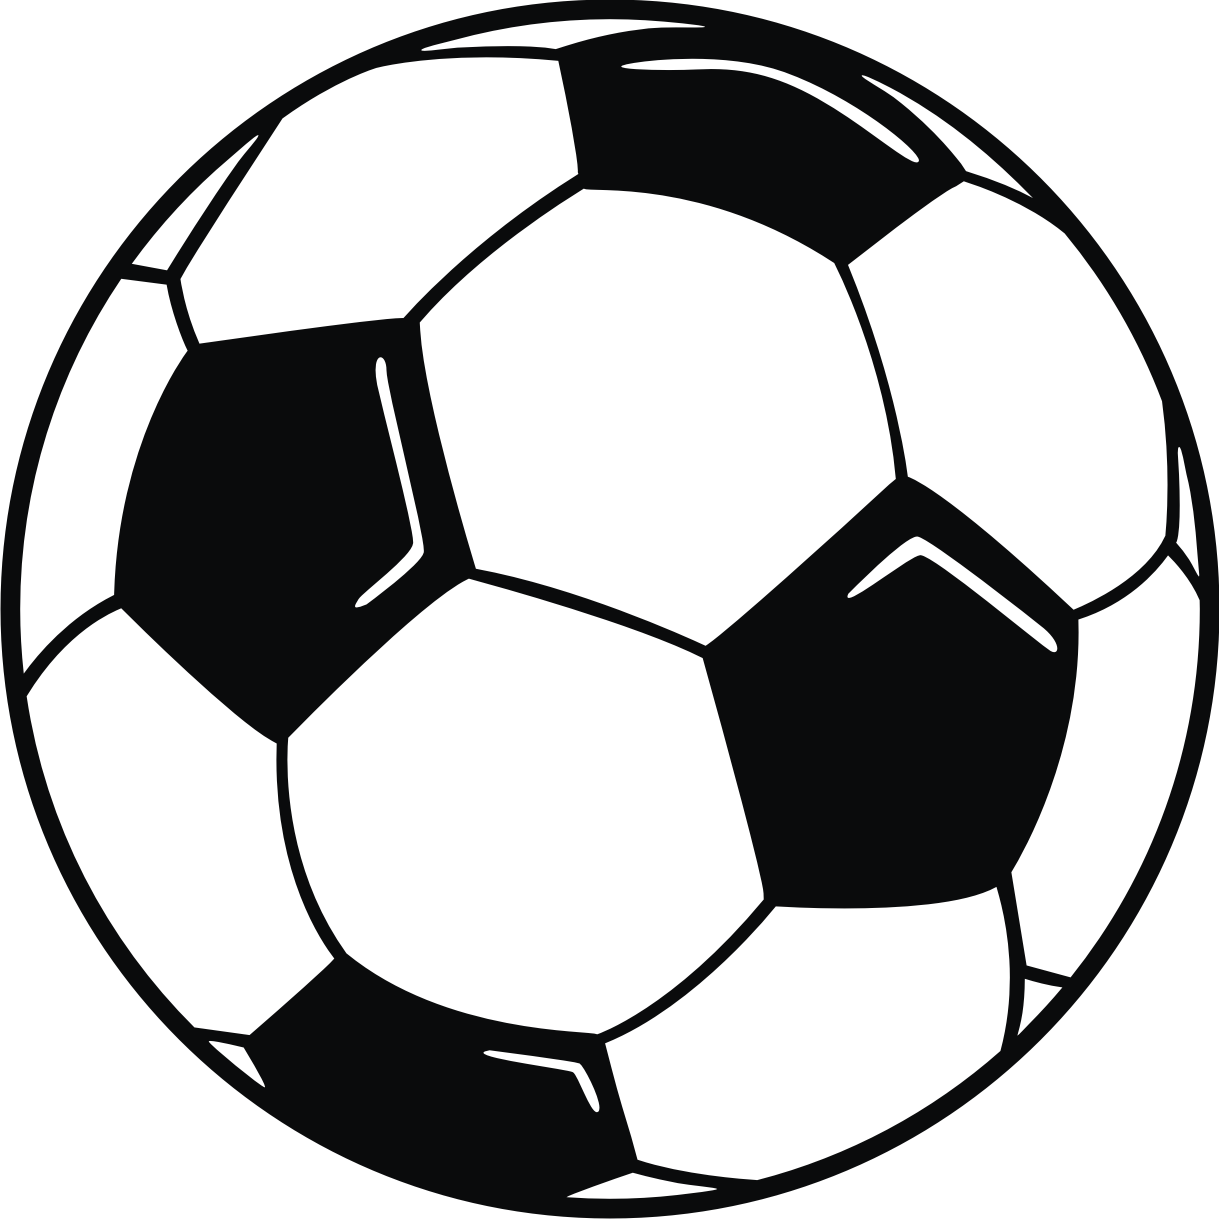 Free Soccer Ball Vector Download - ClipArt Best